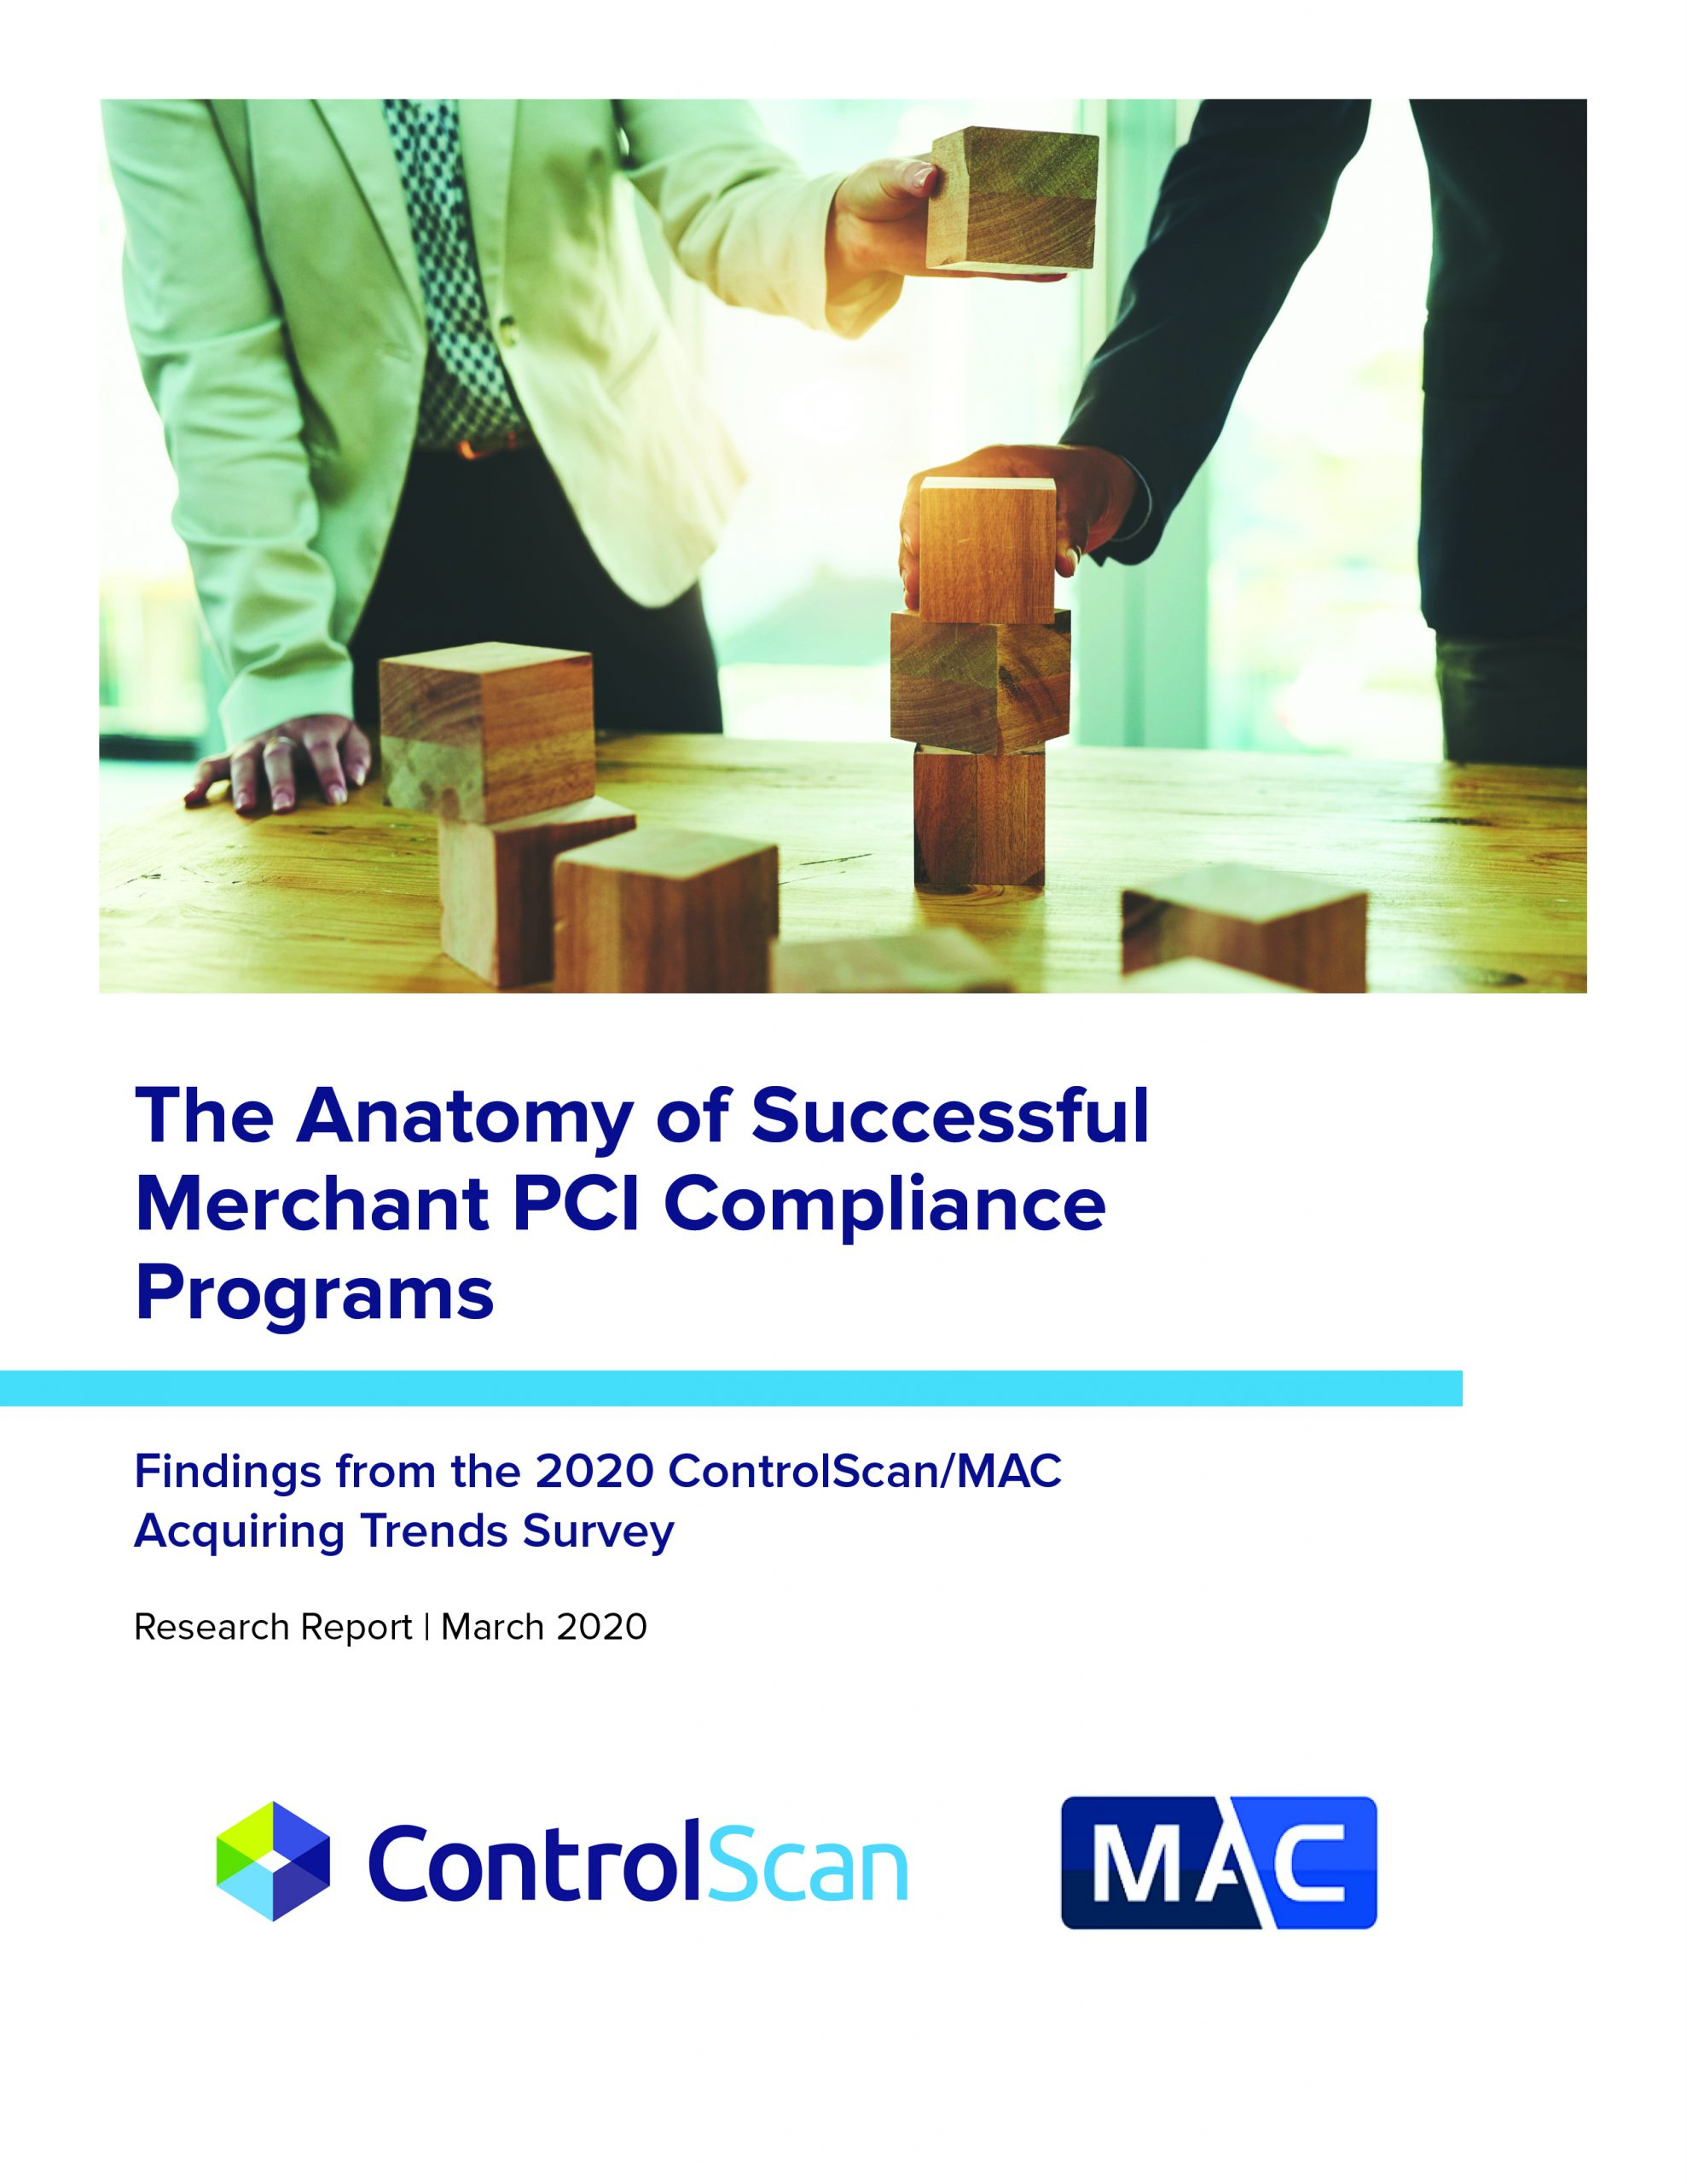 ControlScan/MAC 2020 Acquiring Trends Report - Simplifying PCI Compliance